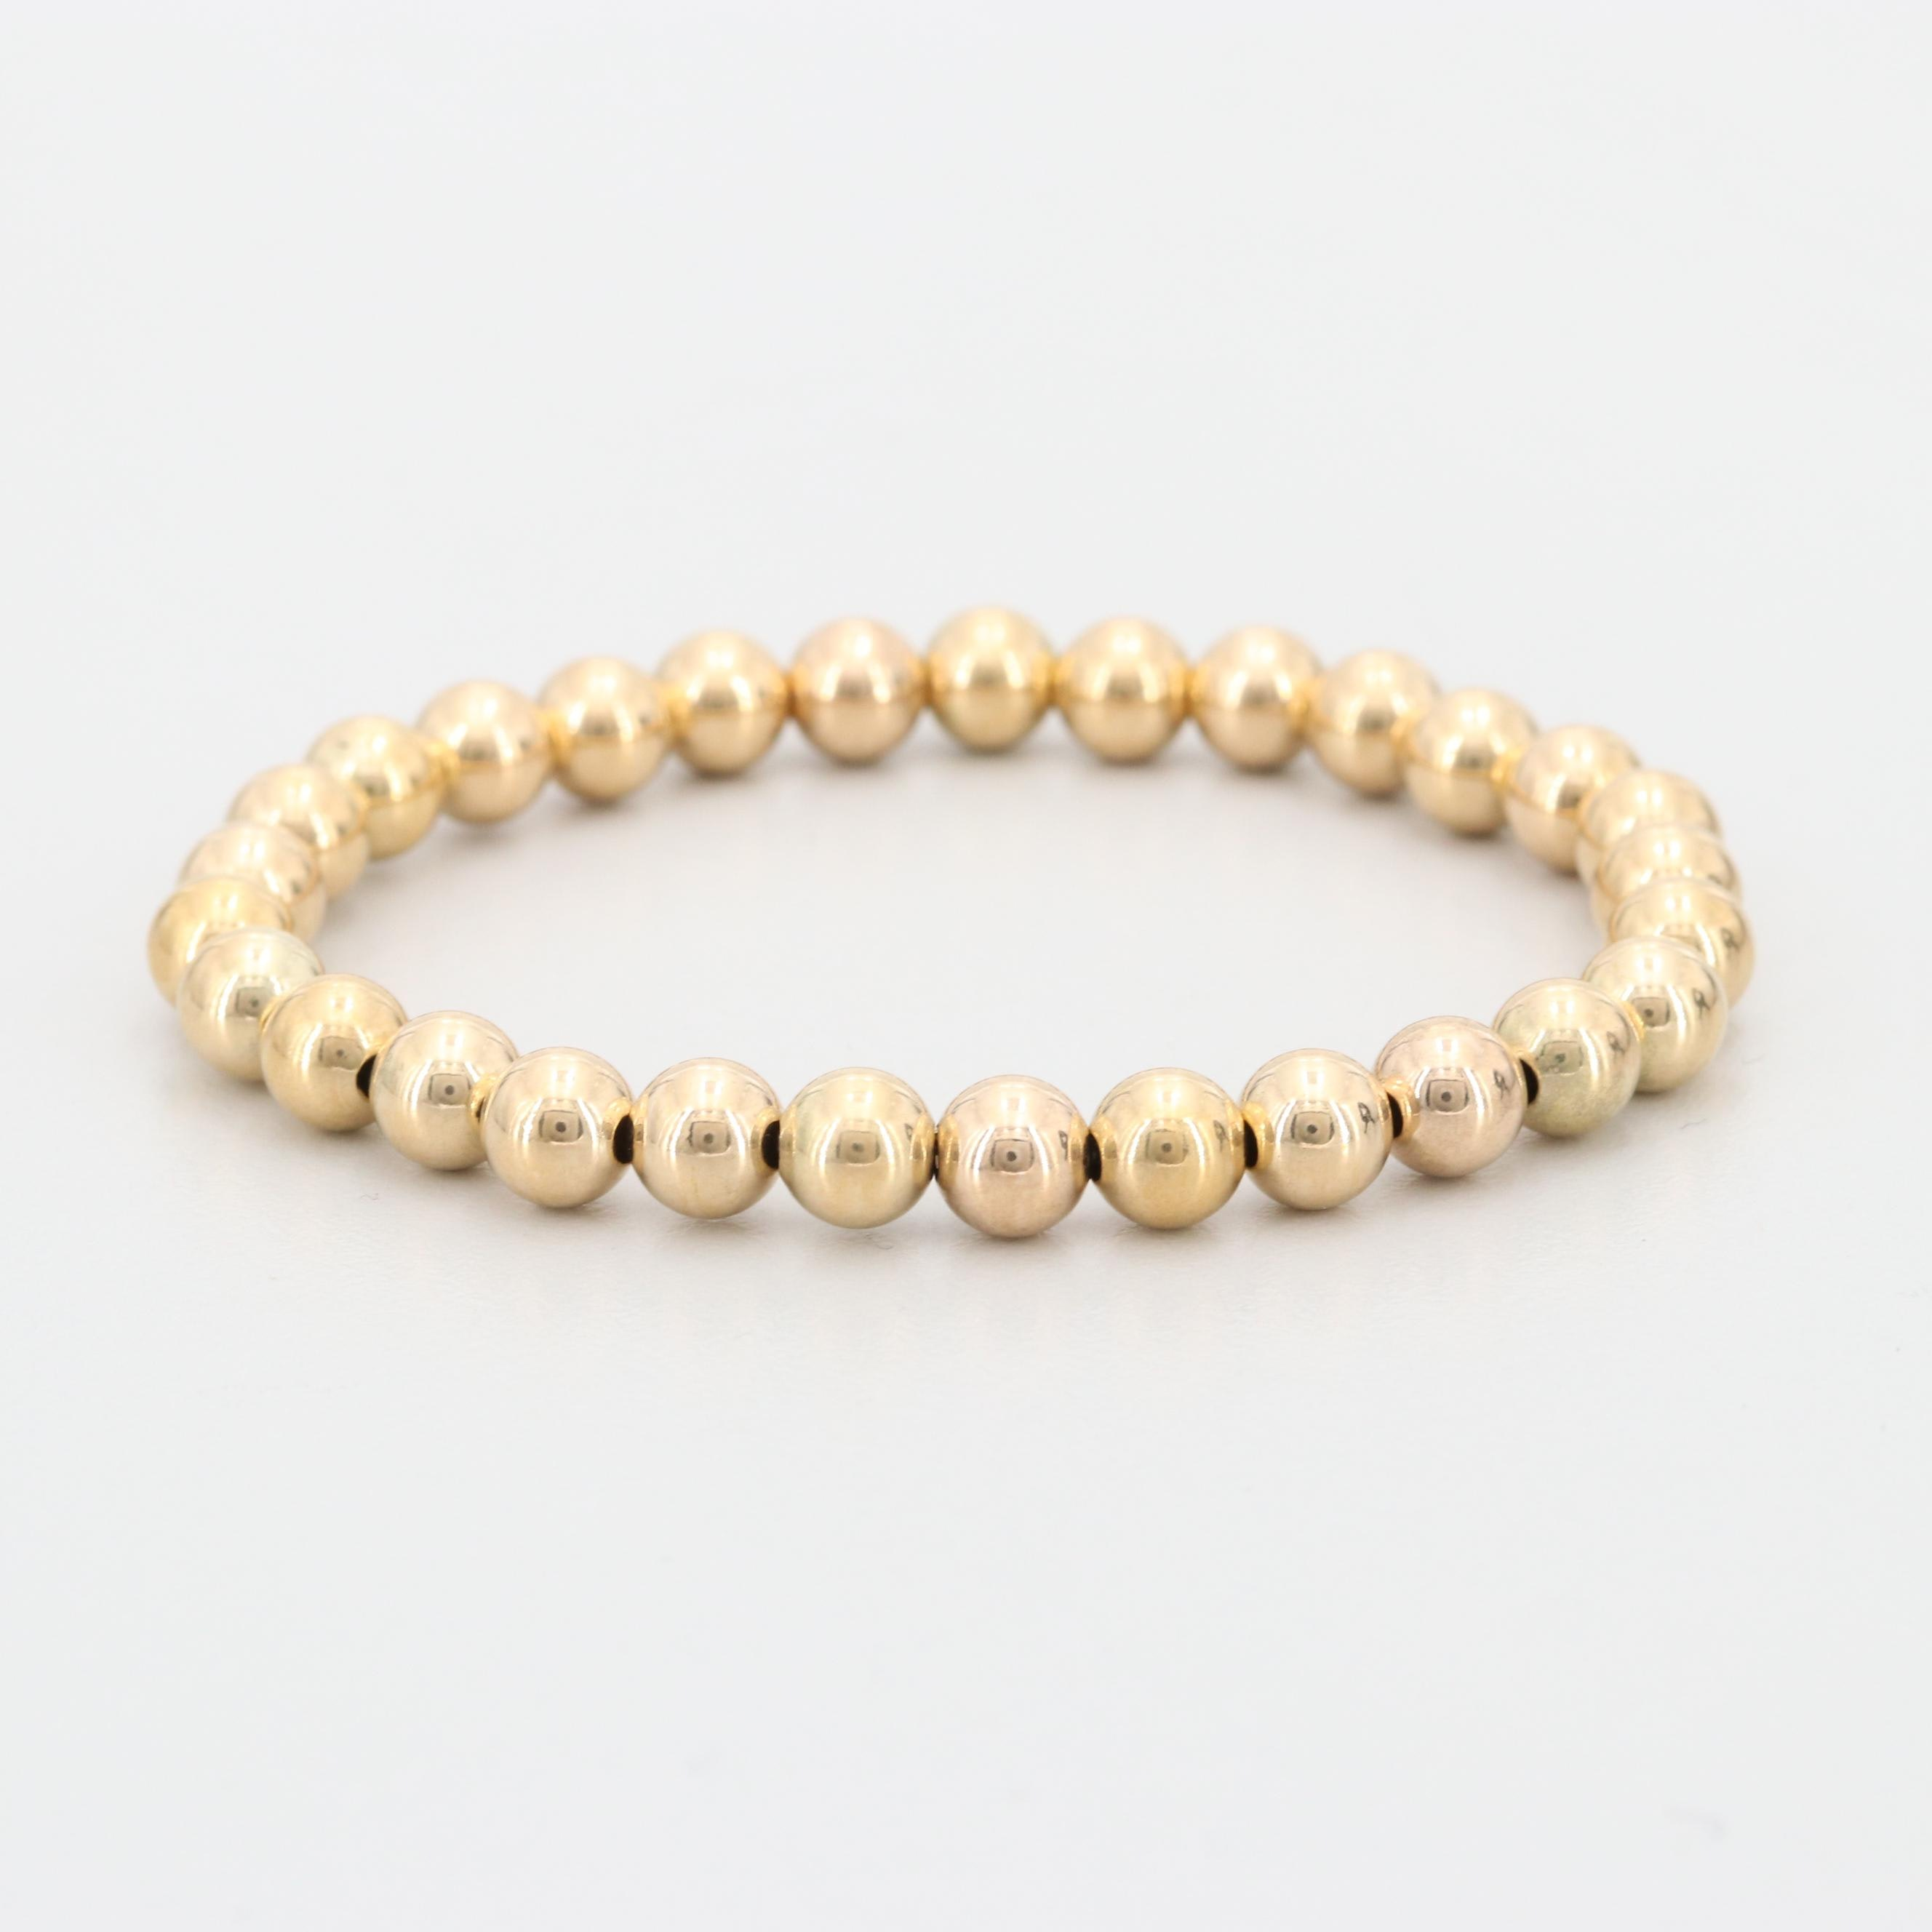 14K Yellow Gold Beaded Stretch Band Bracelet